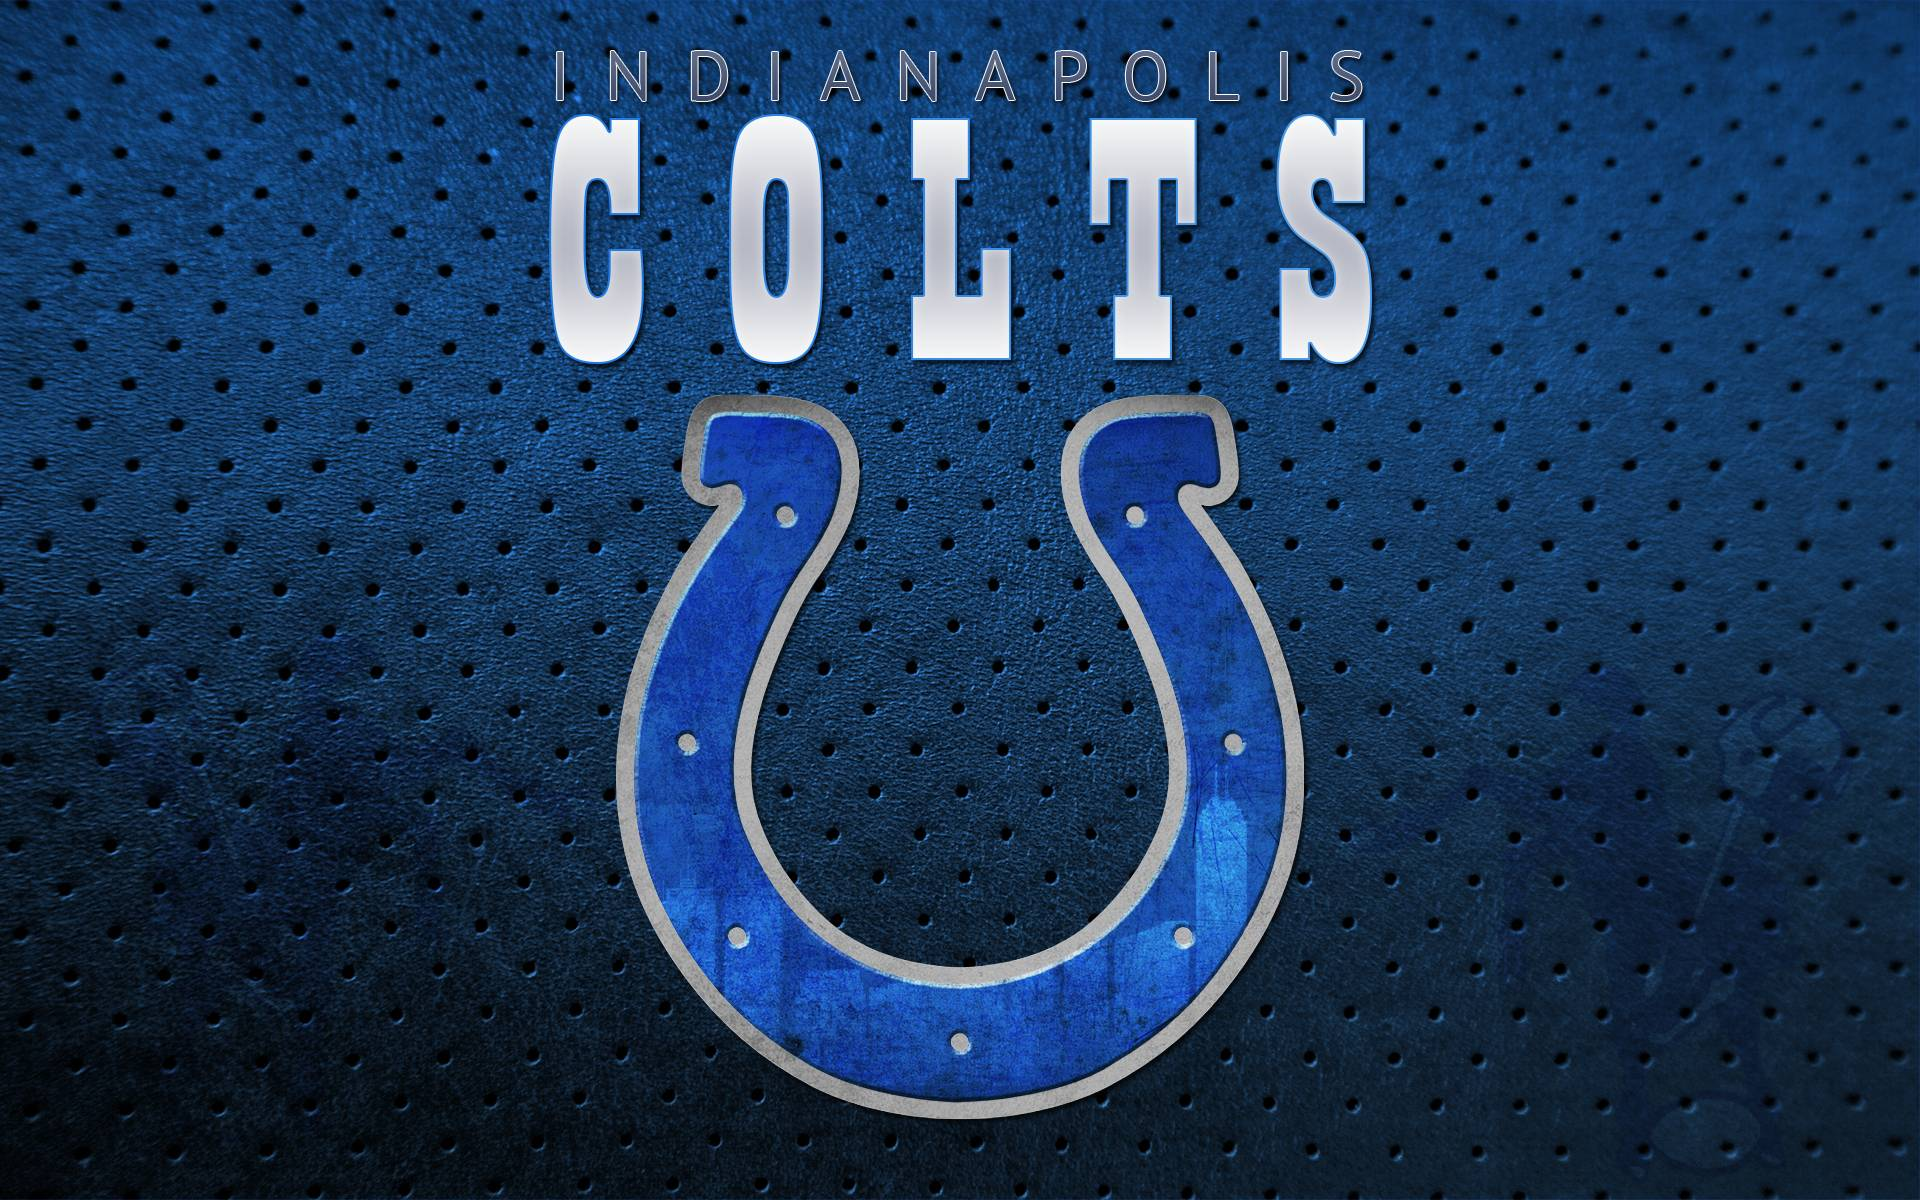 Indianapolis Colts Logo Wallpaper